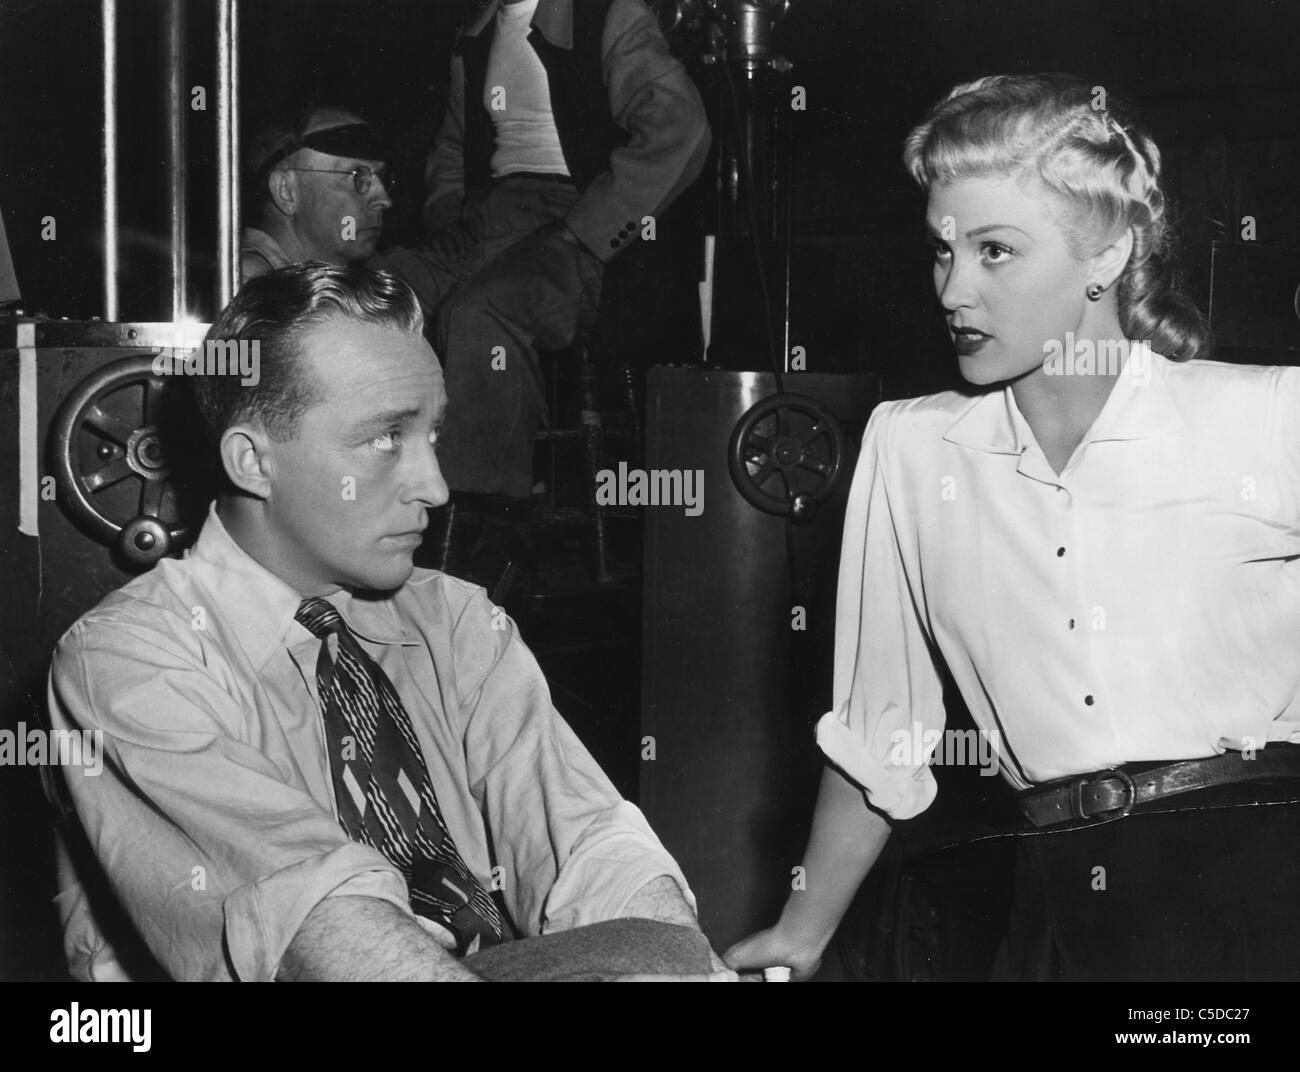 Bing crosby and joan caulfield on set of welcome stranger in 1947 stock image